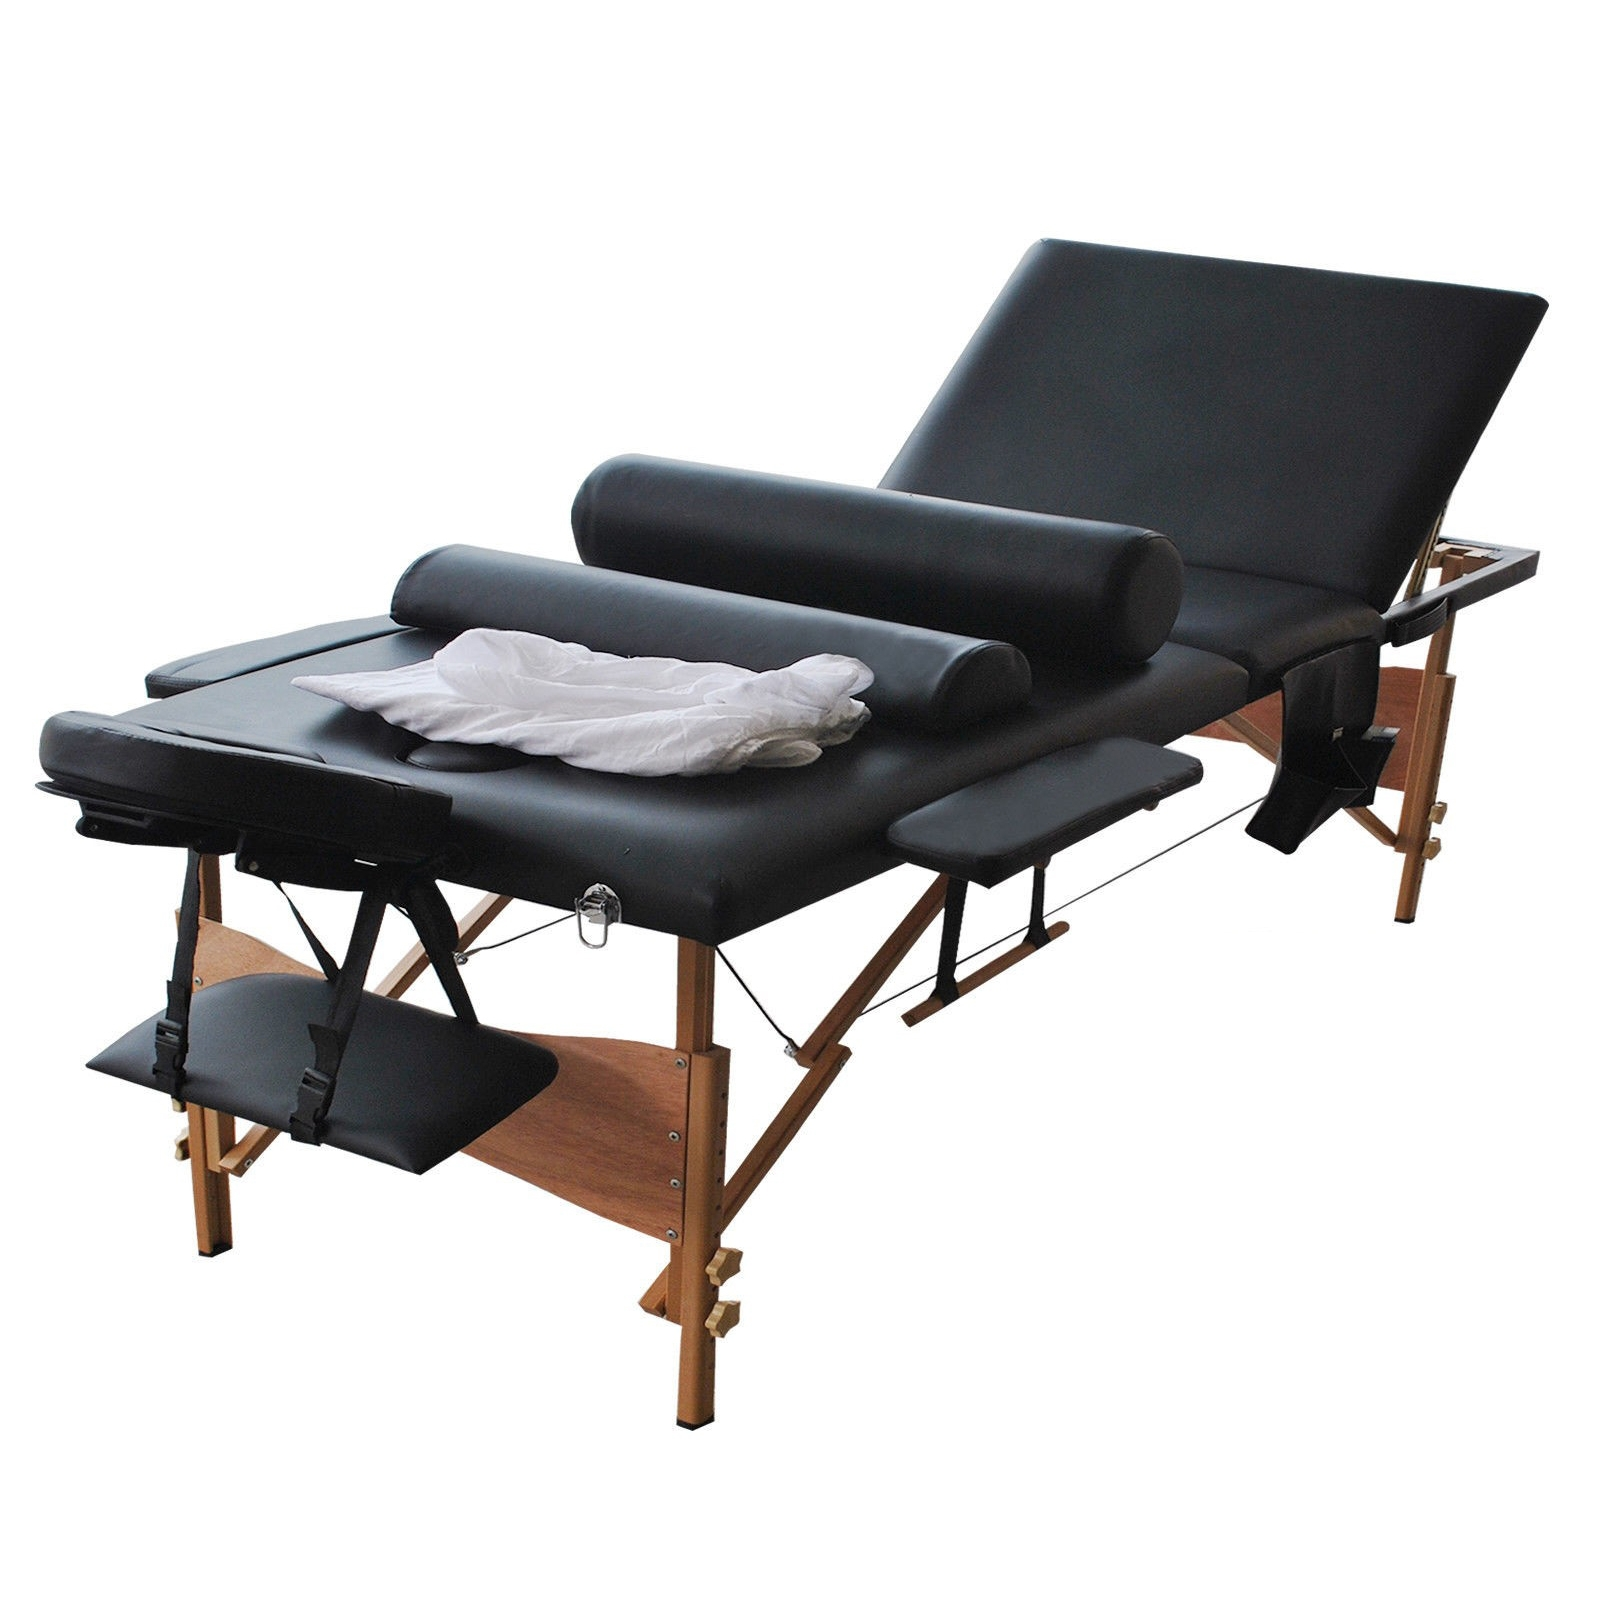 """84""""L 3 Fold Portable Massage Table with Sheet Cover"""